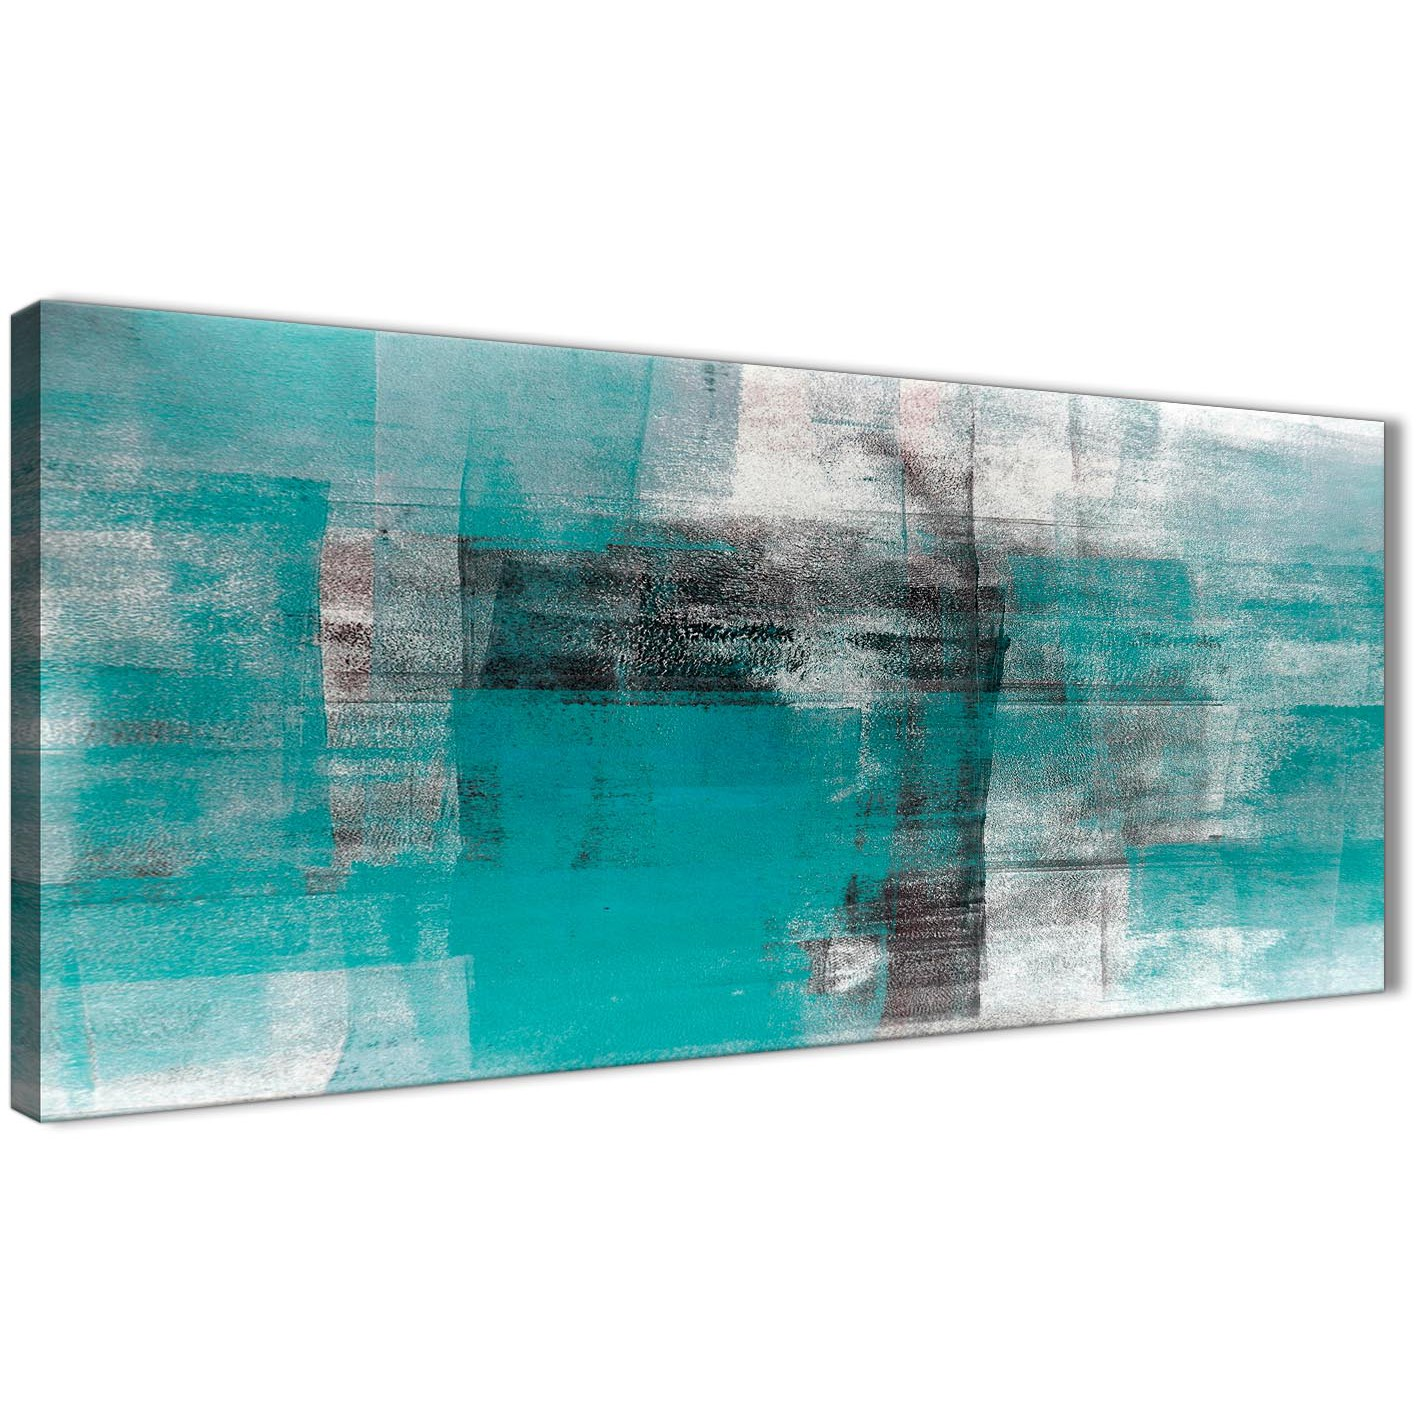 Items Similar To Teal Purple Abstract Flowers Wall Decor: Teal Black White Painting Living Room Canvas Wall Art